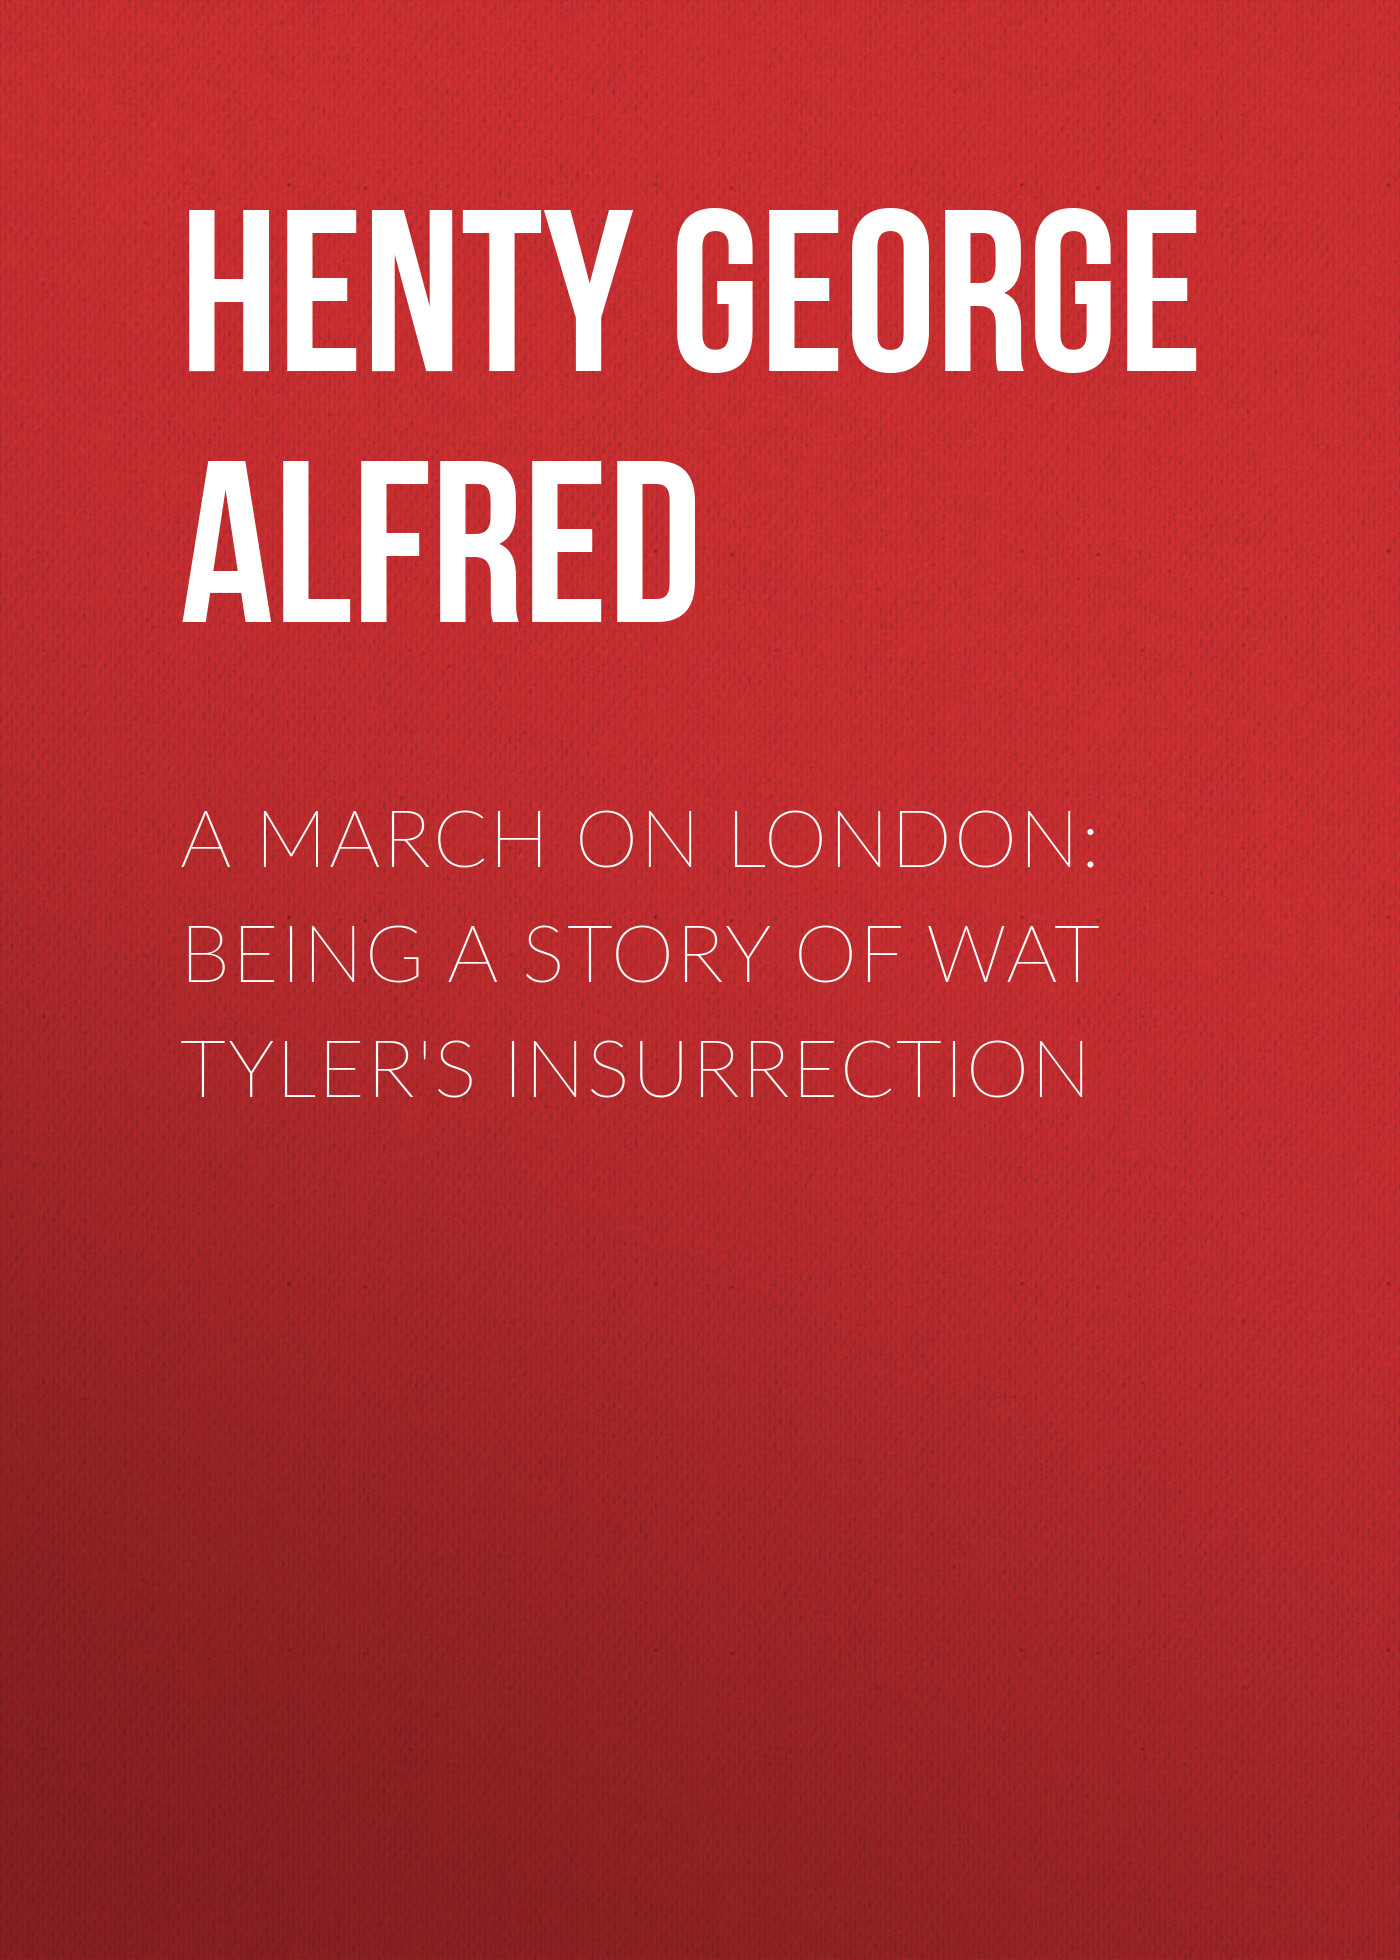 Henty George Alfred A March on London: Being a Story of Wat Tyler's Insurrection